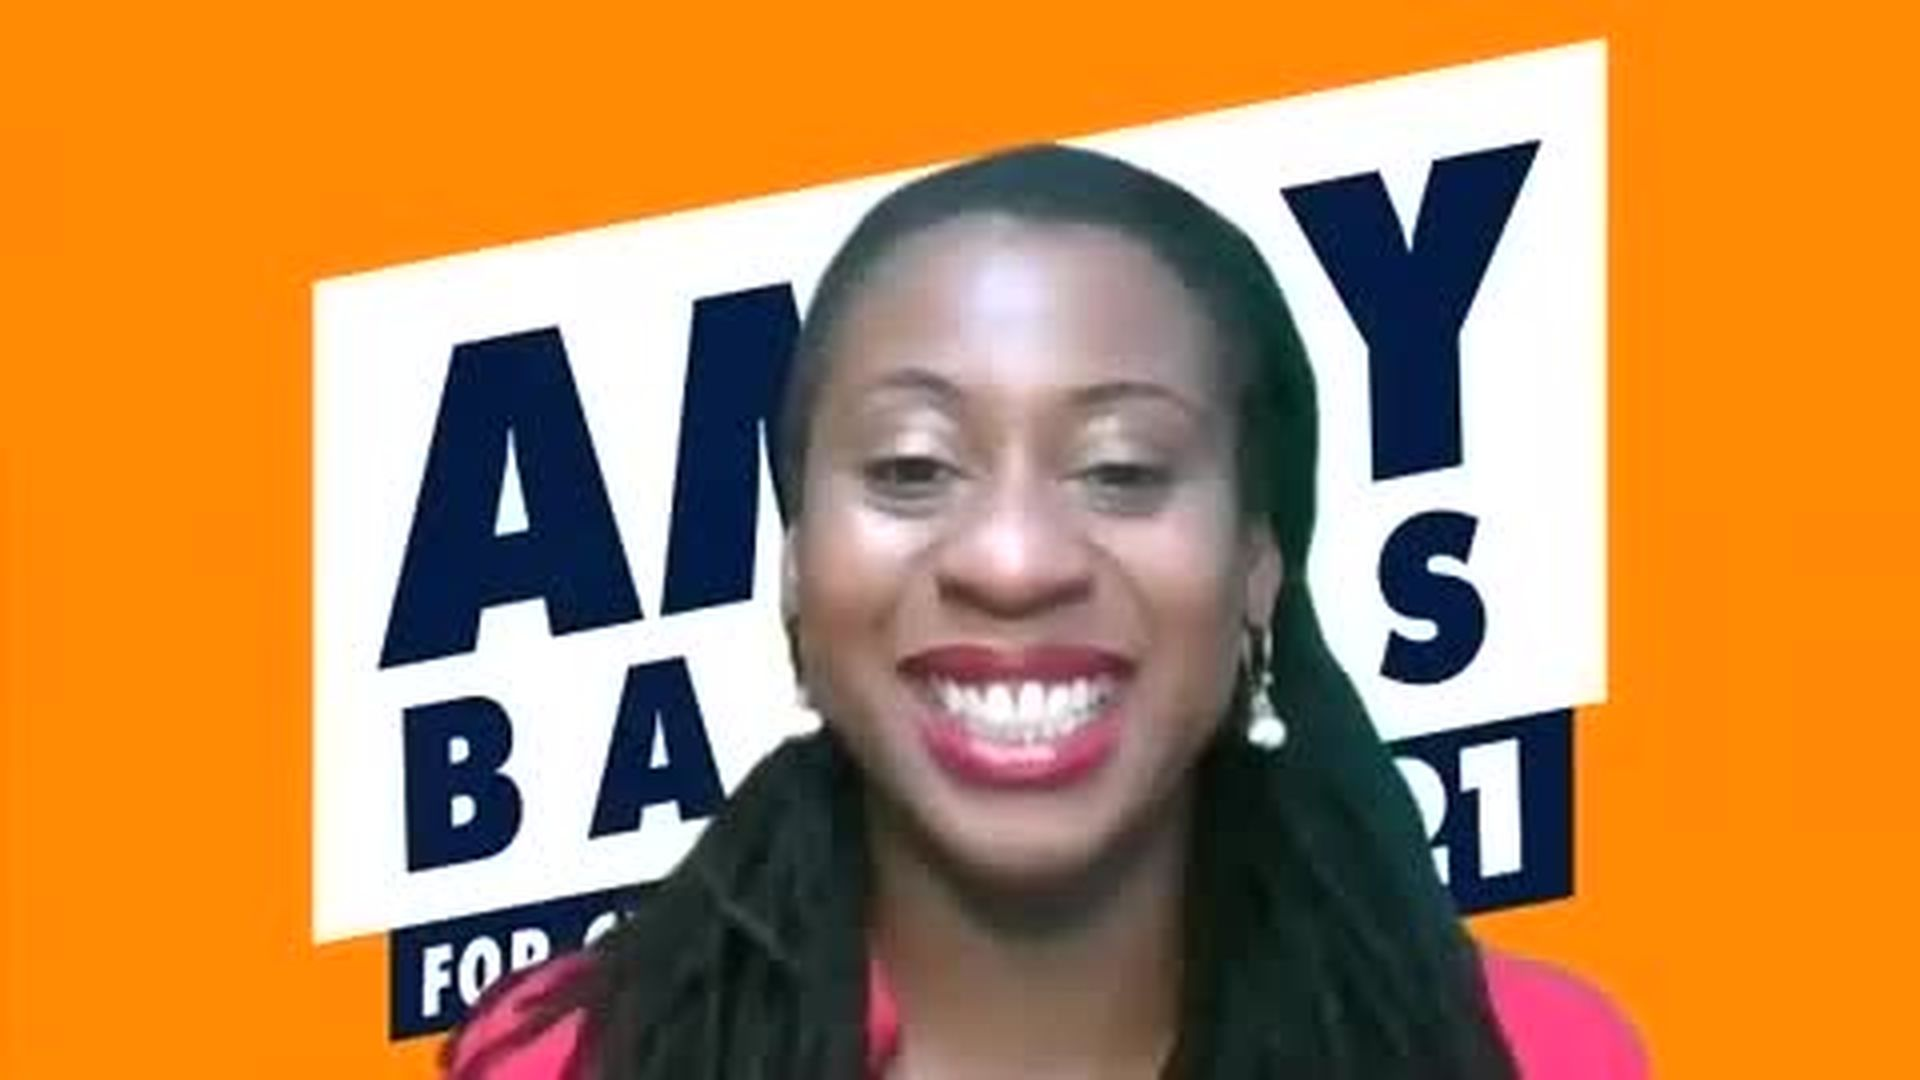 Amoy Barnes | Democratic Candidate for NYC Council District 49